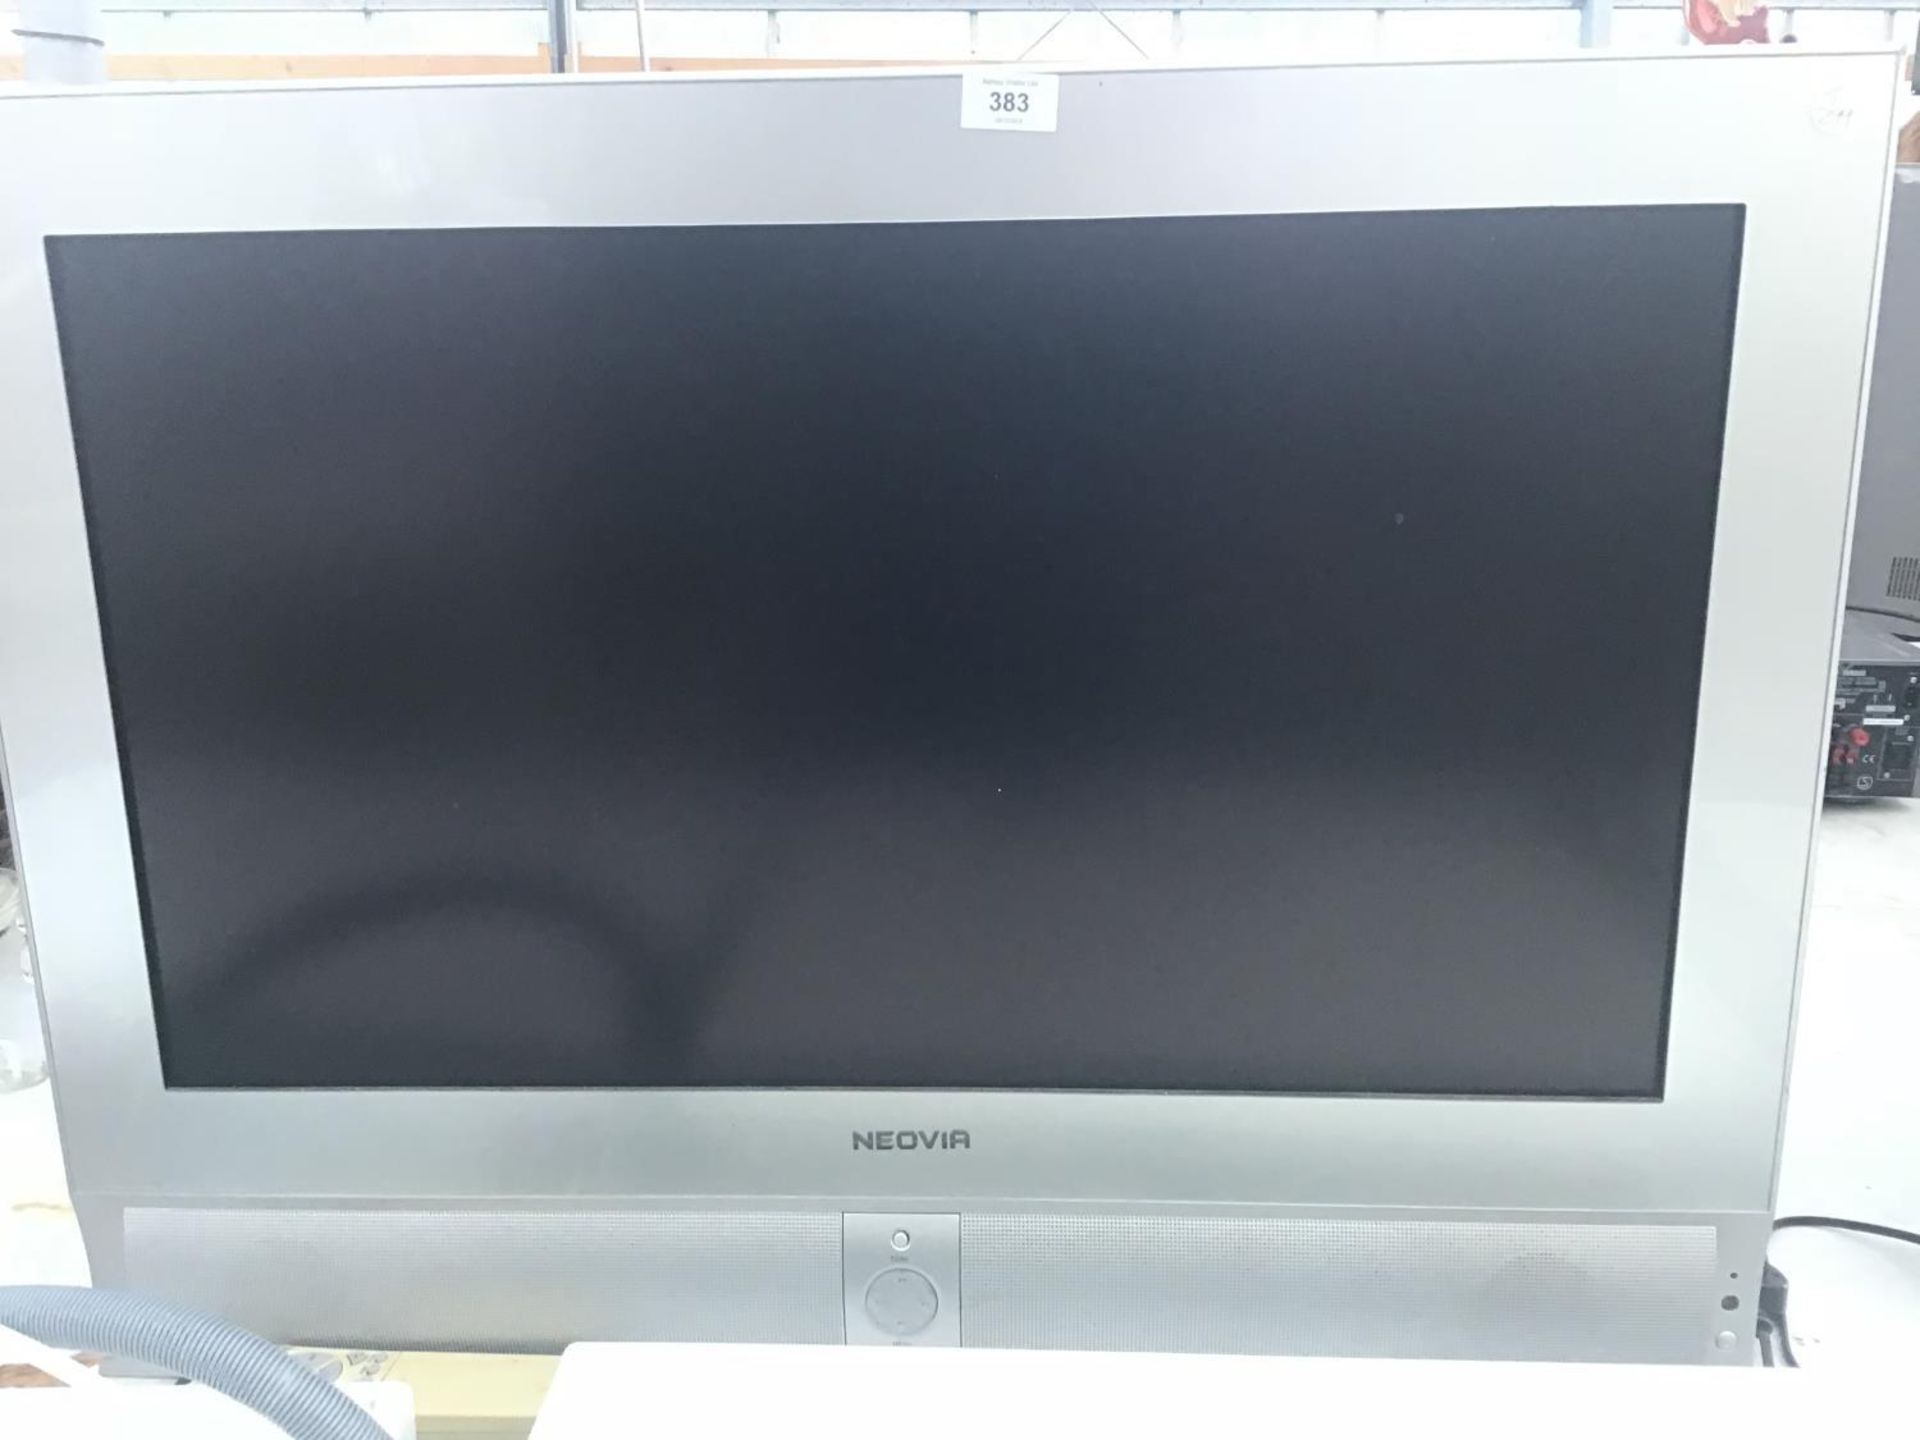 Lot 383 - A NEOVIA 31 INCH TELEVISION WITH REMOTE CONTROL IN WORKING ORDER